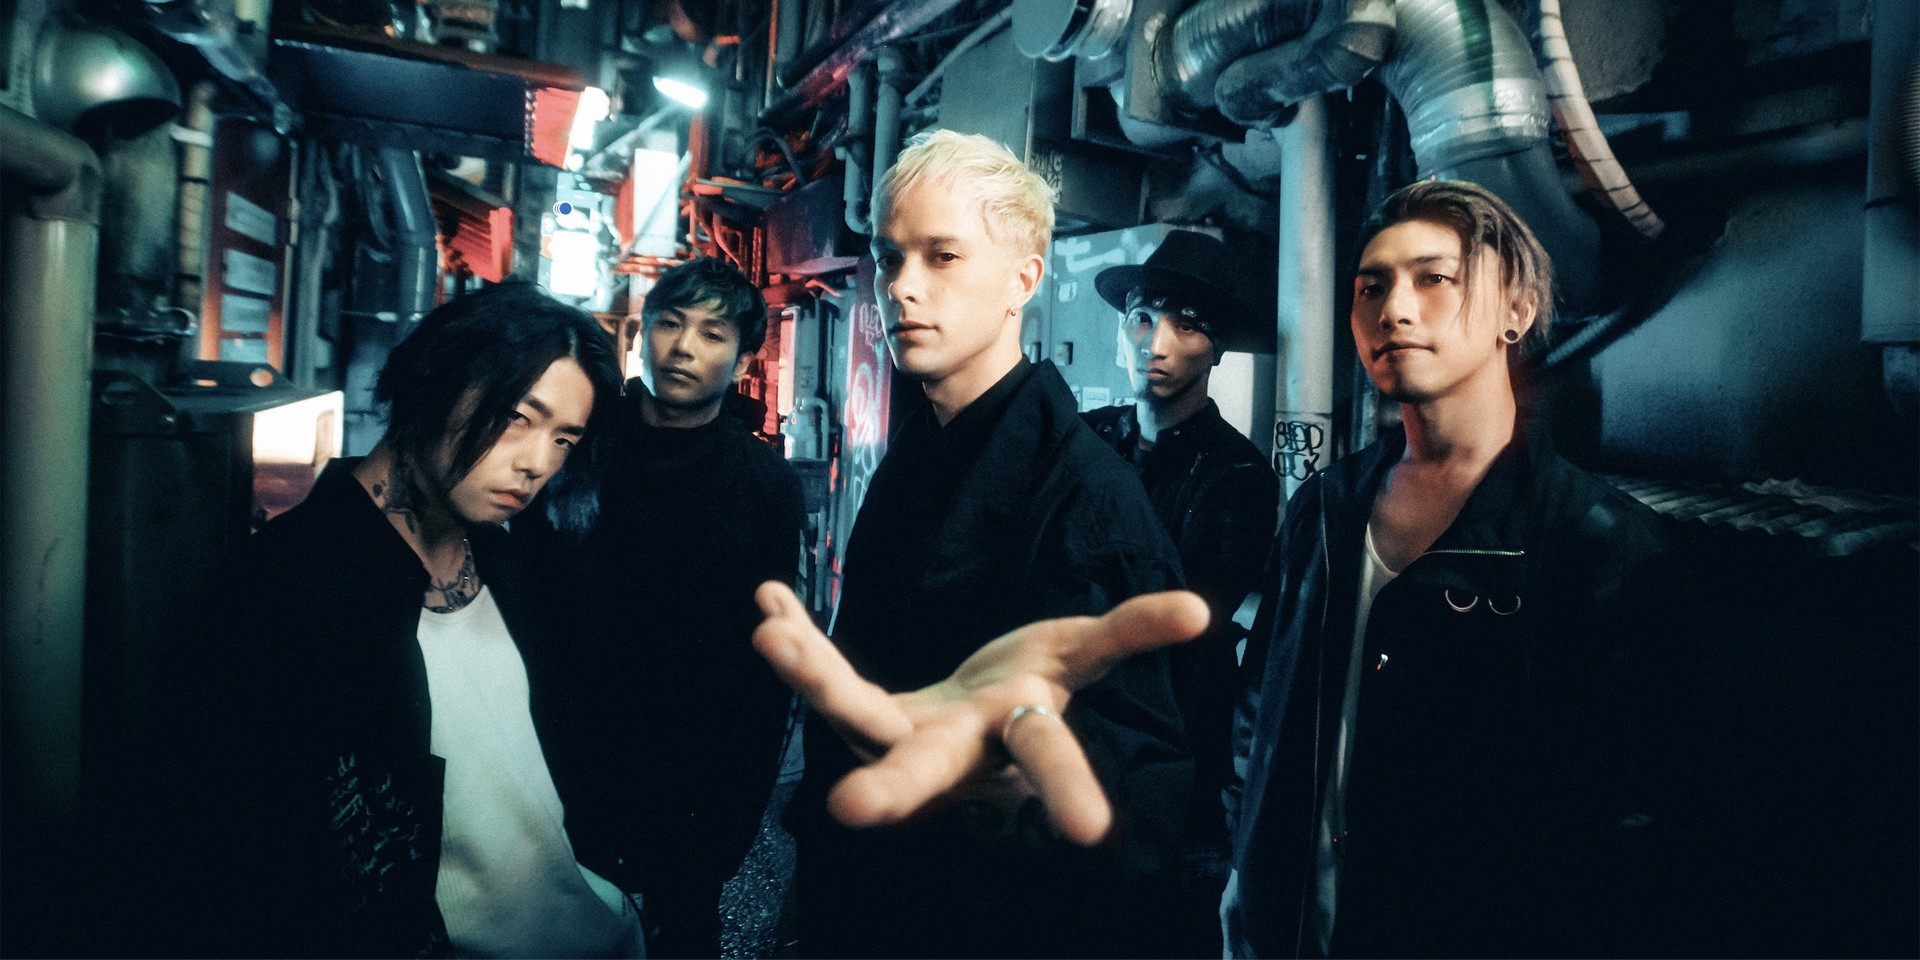 coldrain to hold online concert, here's how overseas fans can get discounted tickets